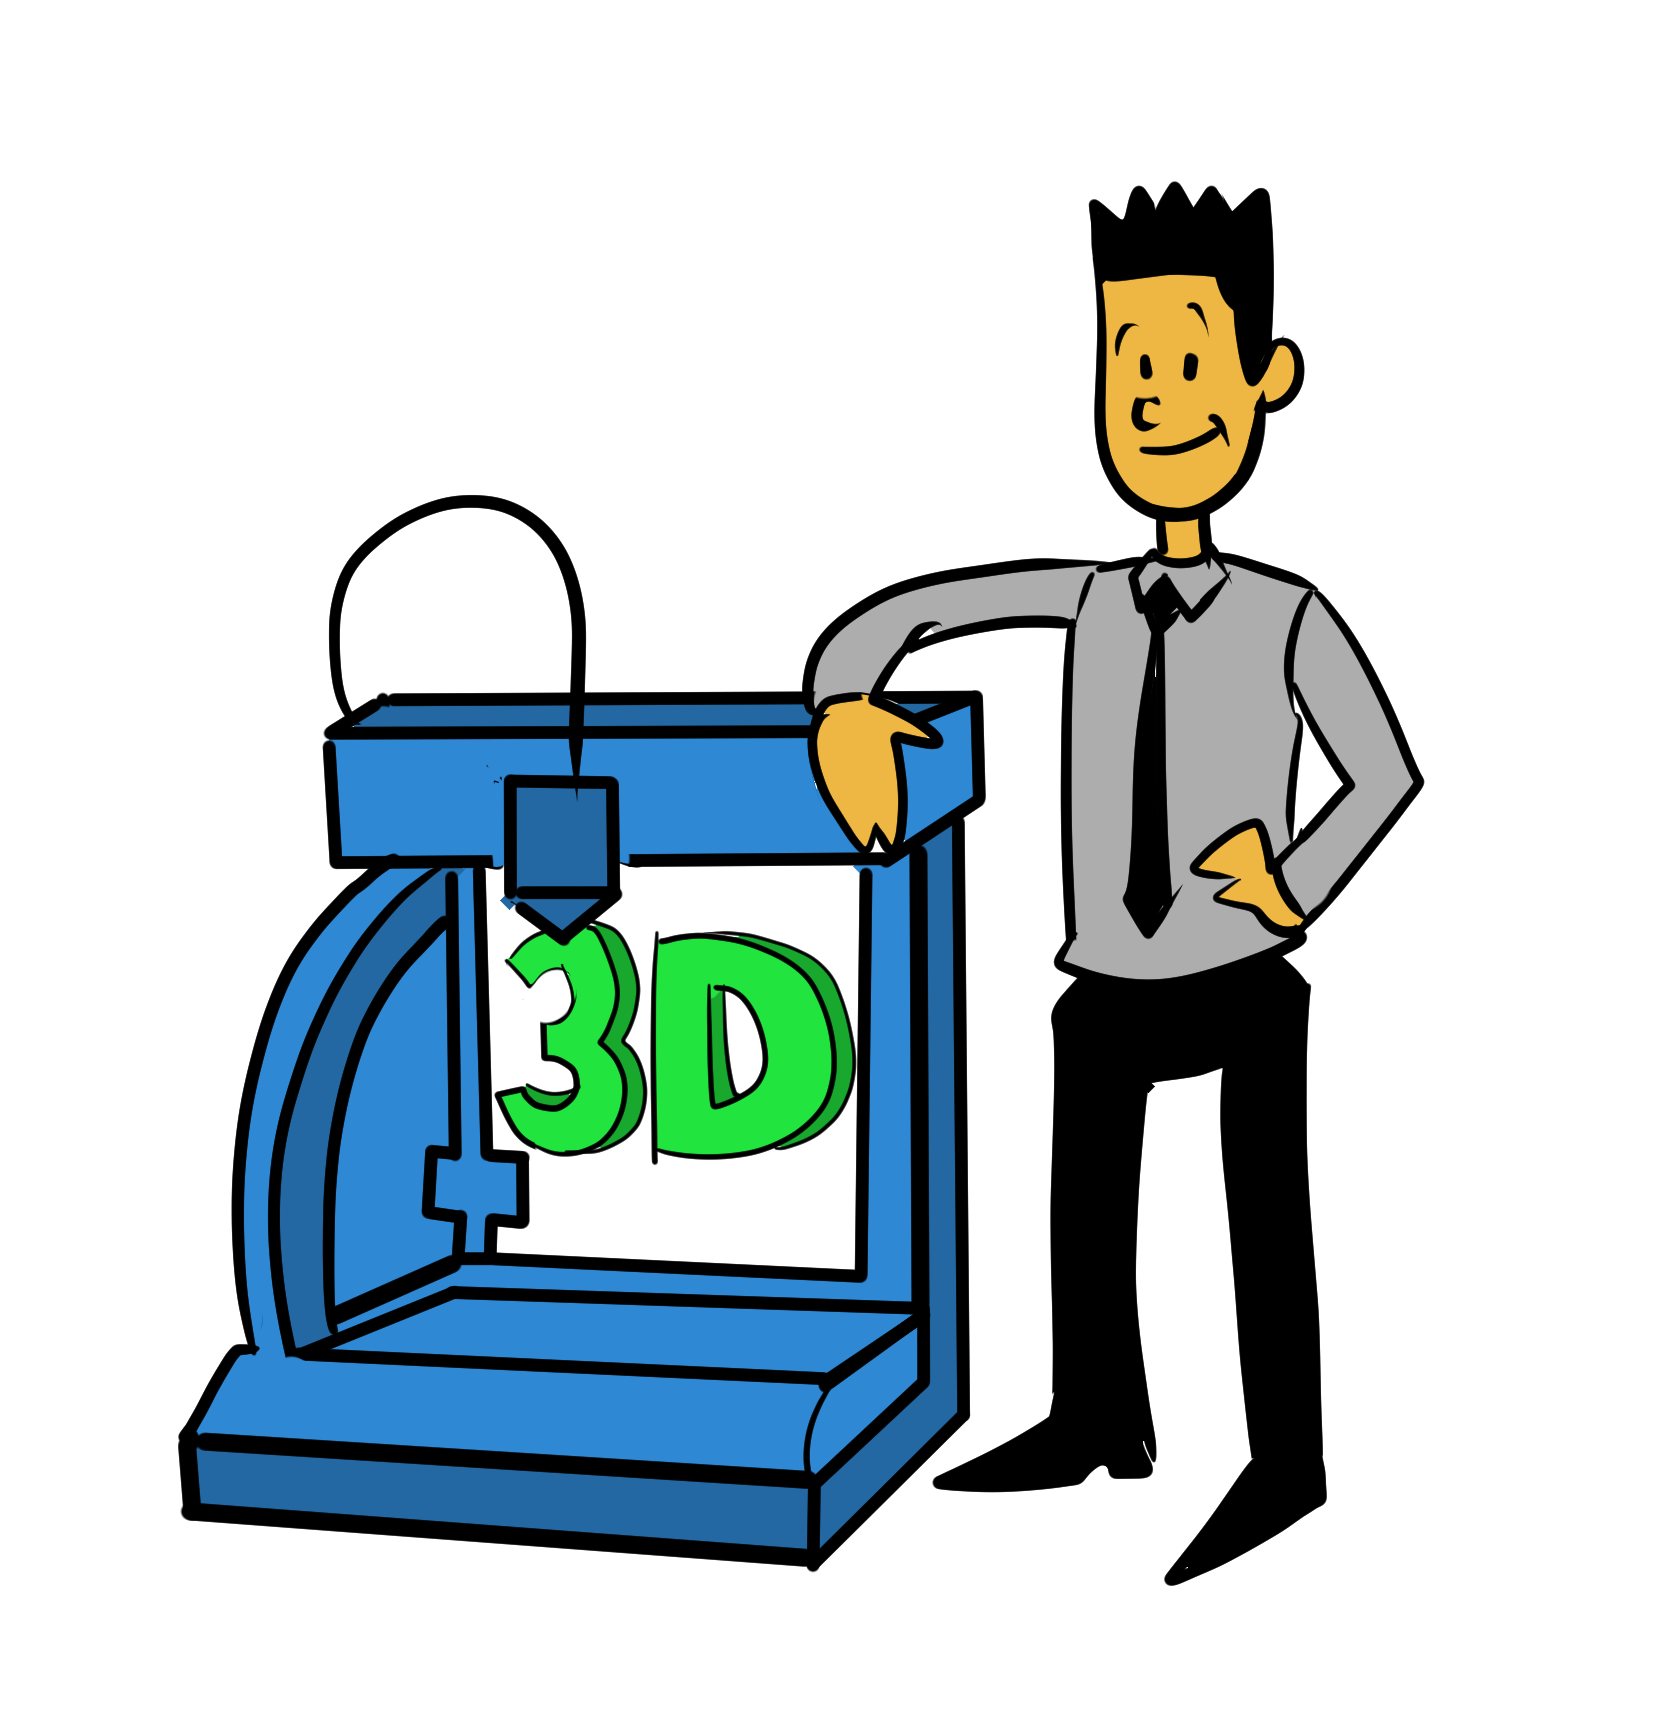 financing for 3d printers